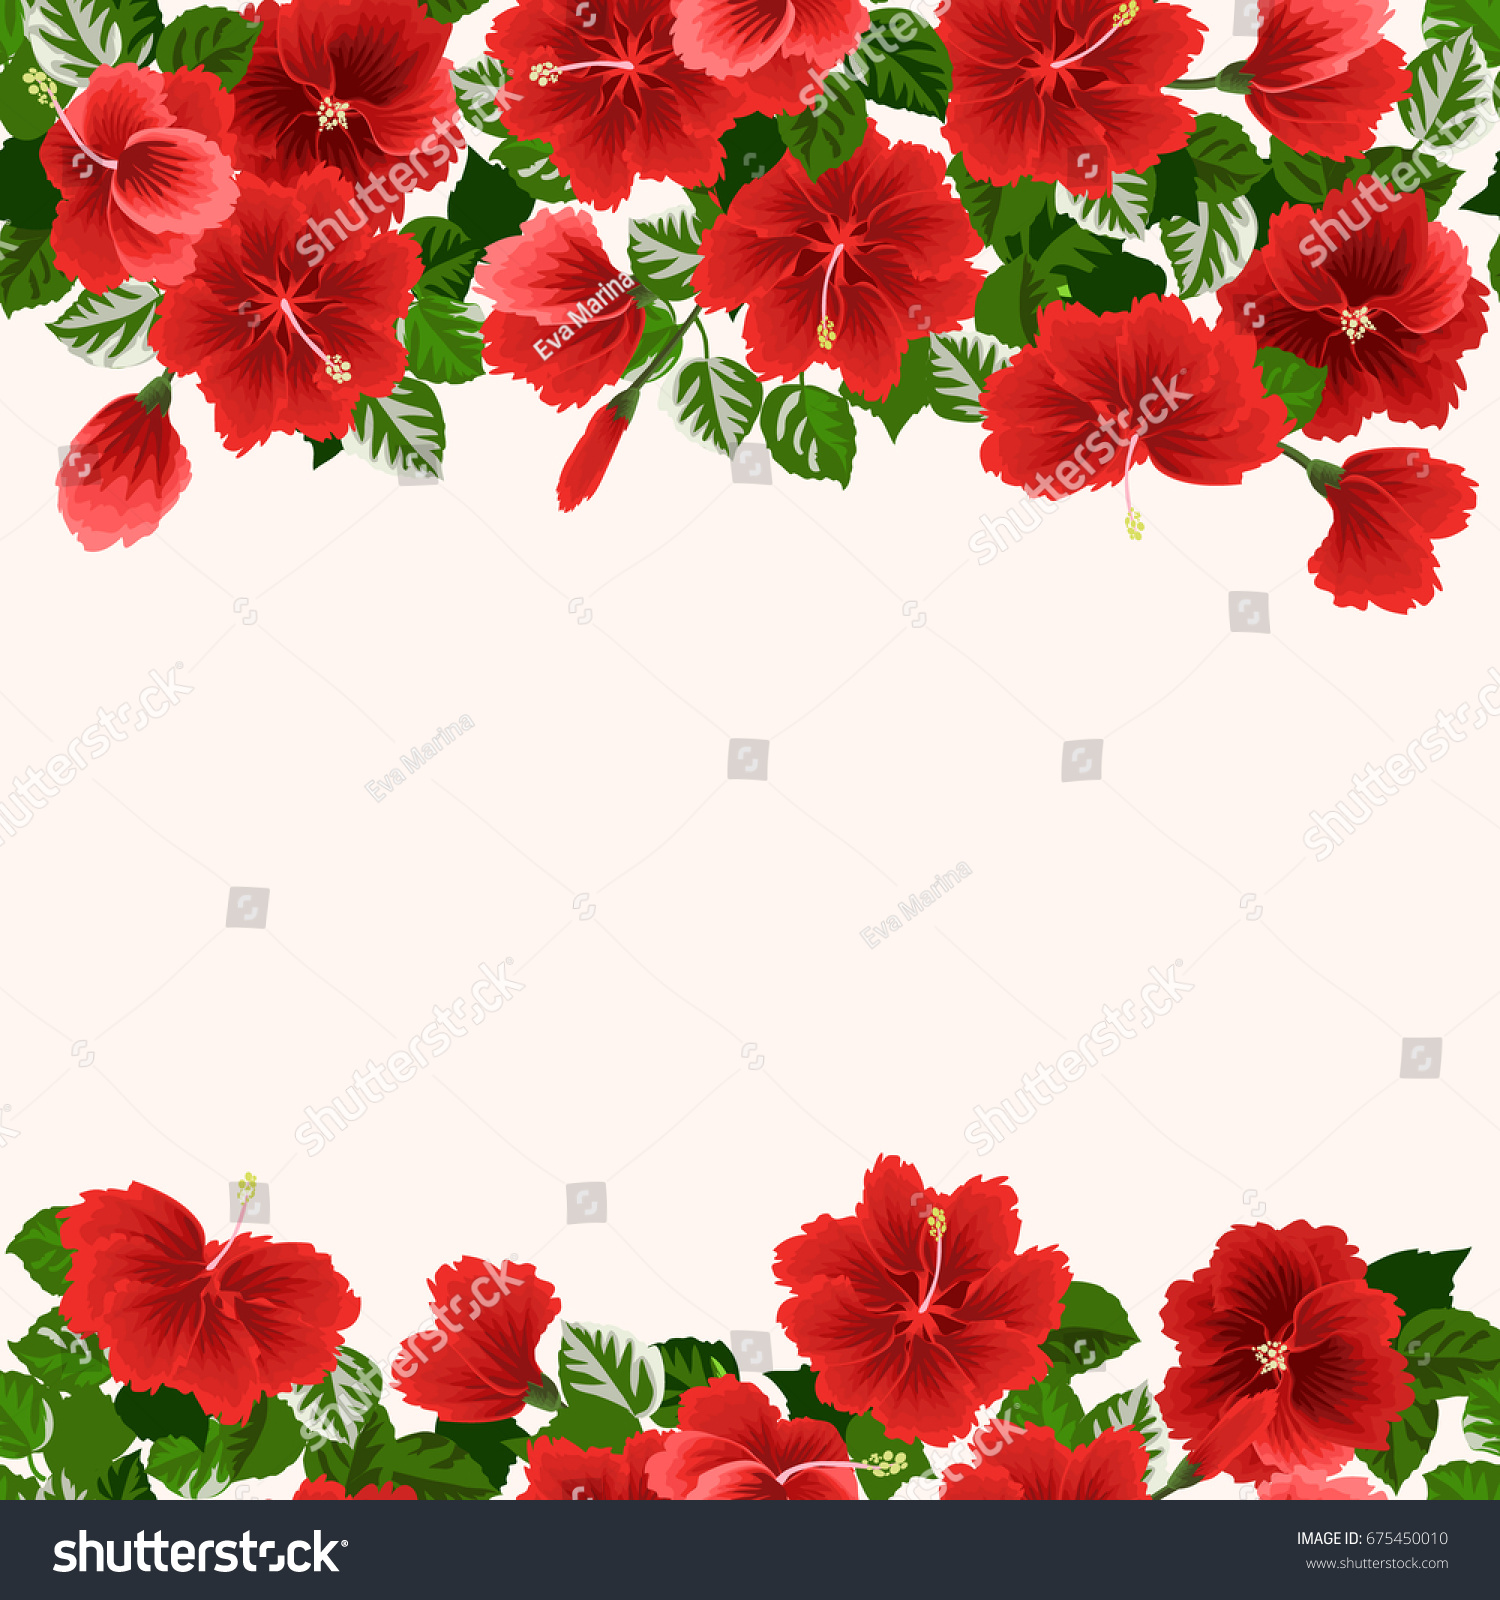 Floral Invitation Tropical Flowers Hibiscus Greeting Stock ...